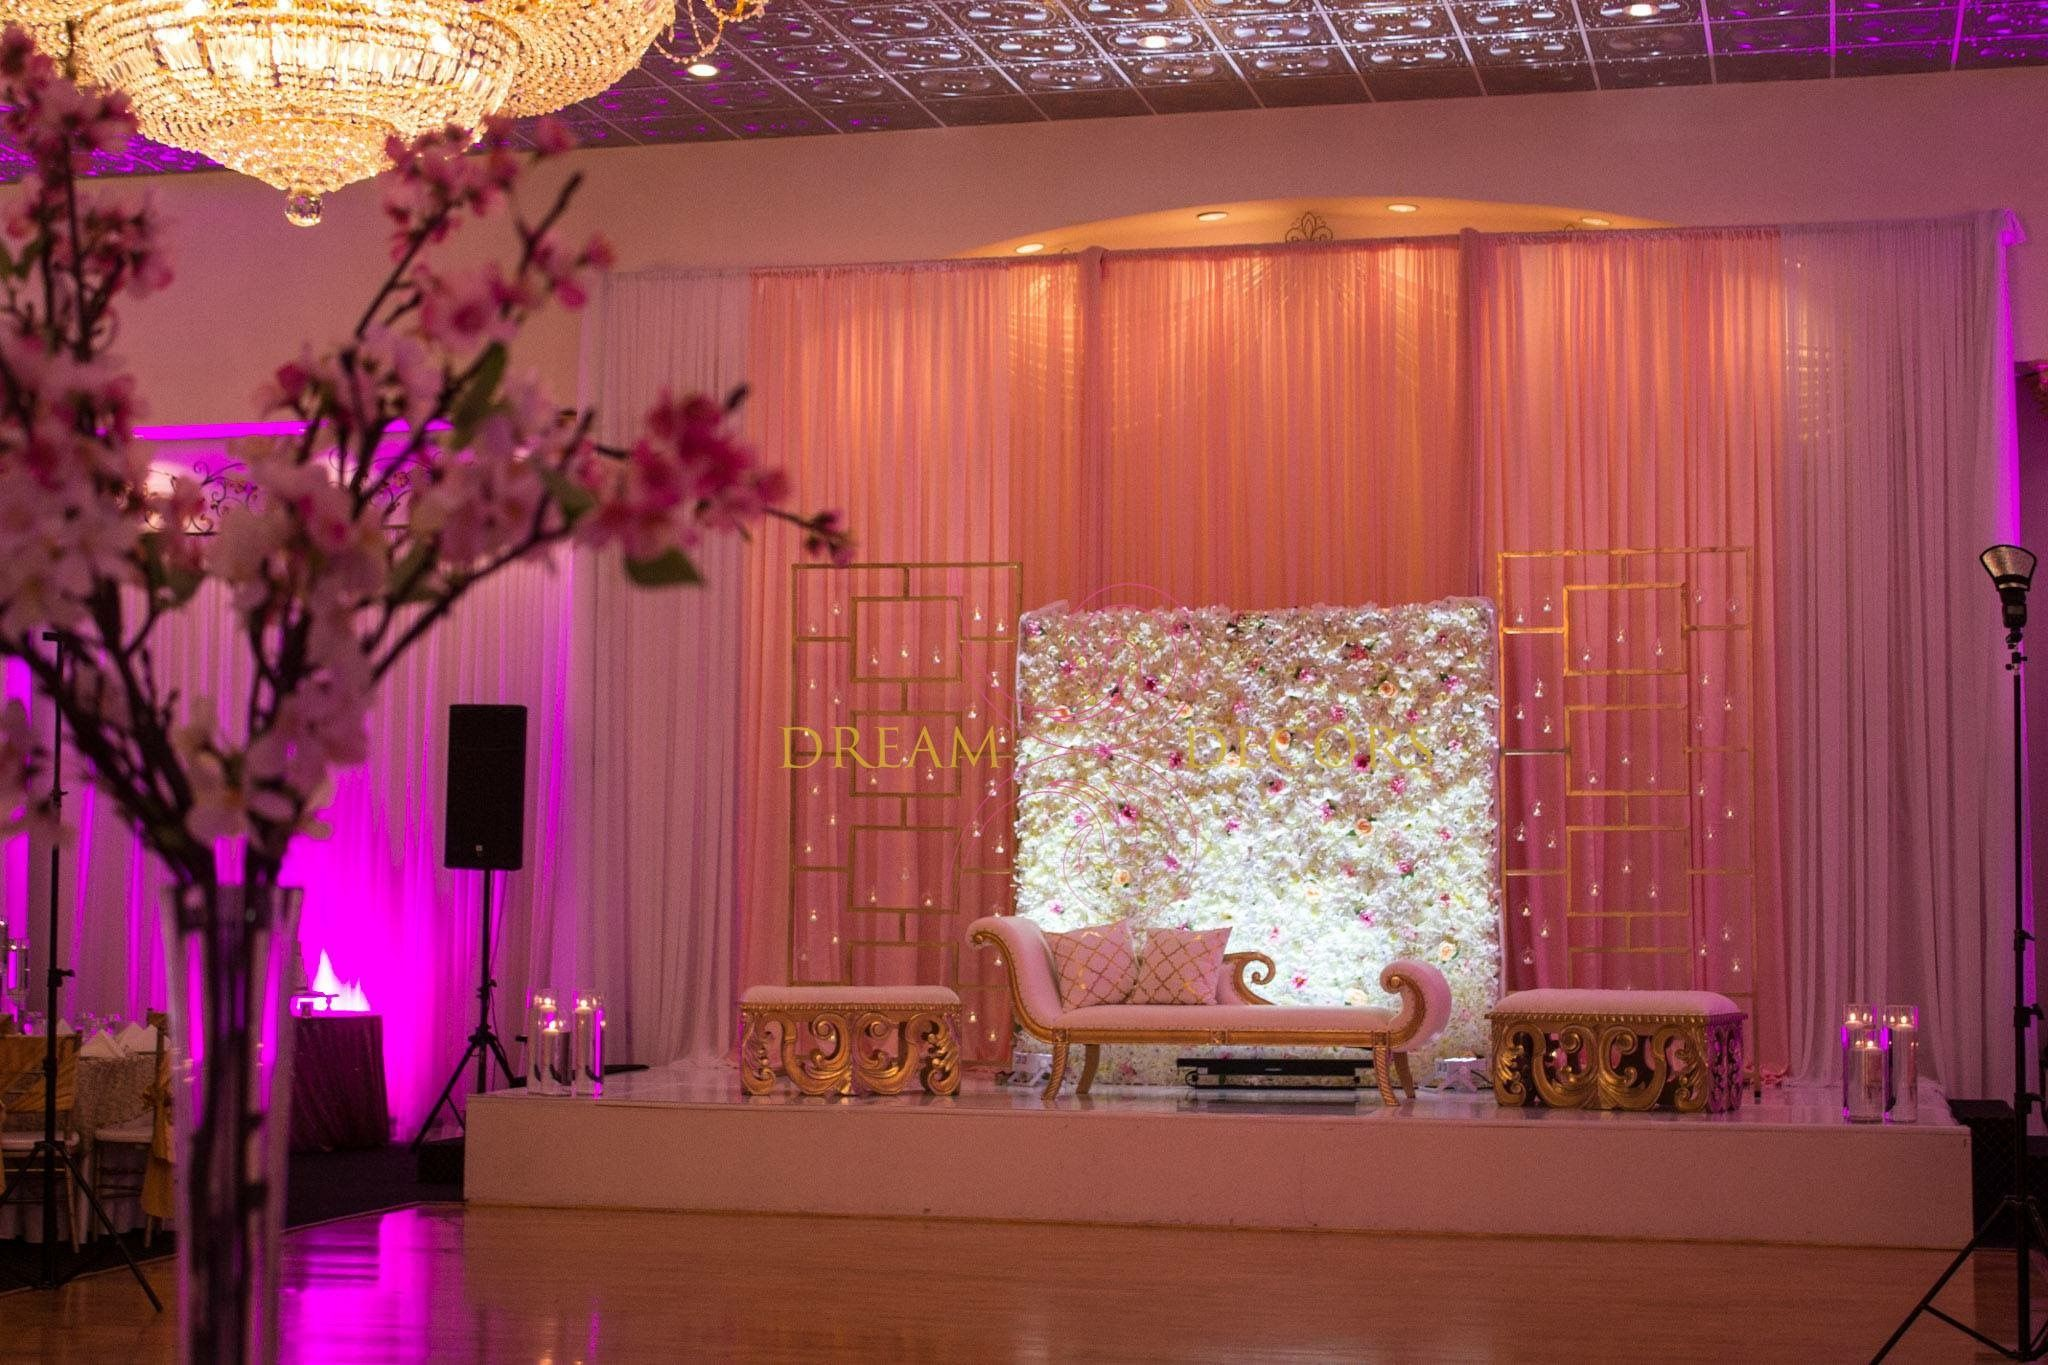 Wedding stage decoration design  Pin by Bola Njinimbam on My Dream Wedding  Pinterest  Desi and